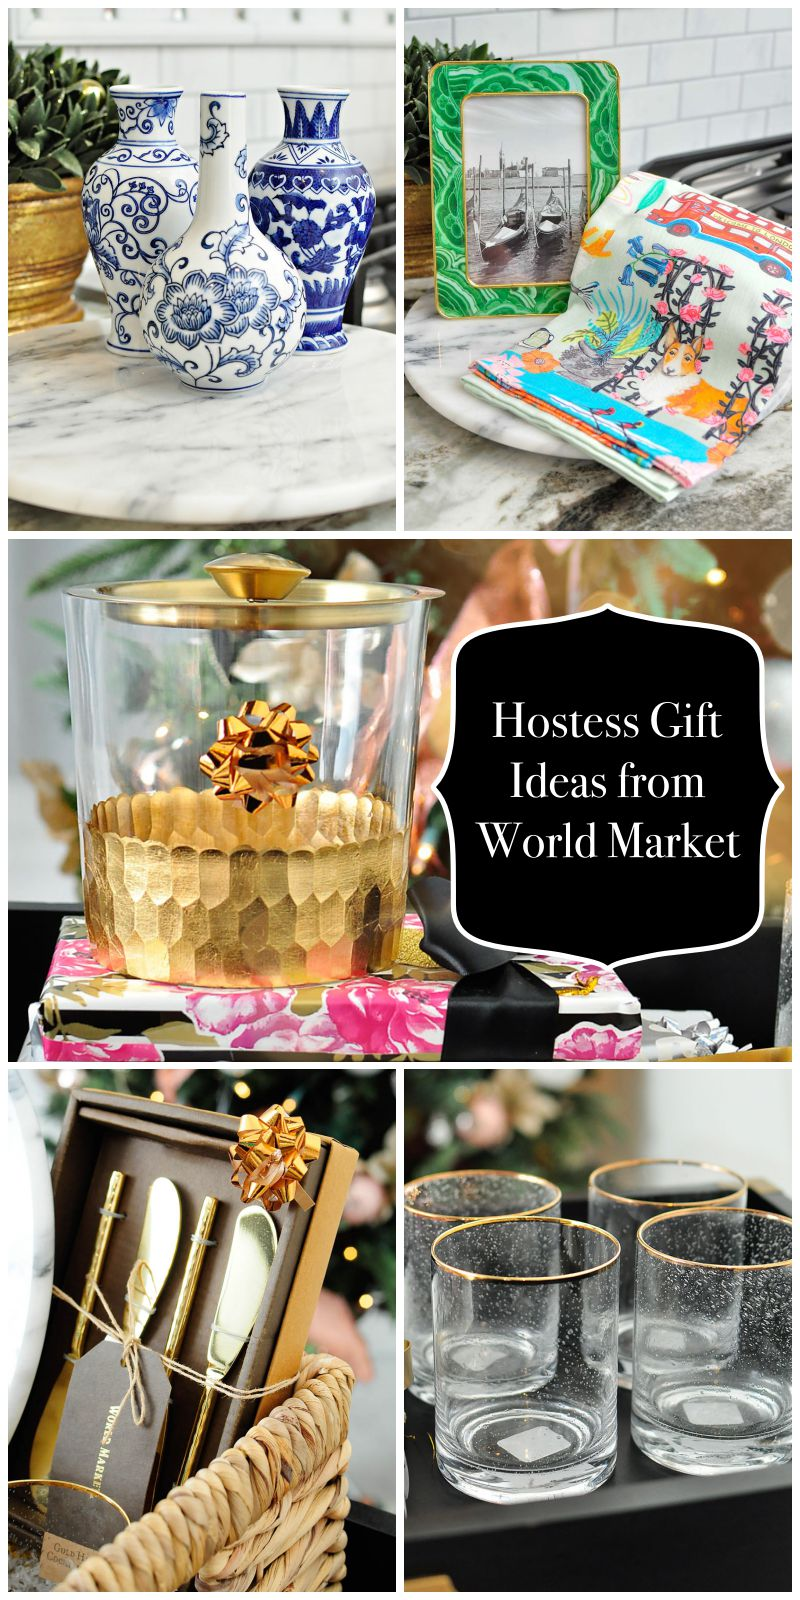 Gift ideas for the hostess in your life from World Market- ginger jars, cocktail glasses, kitchen towels, ice bucket and more. So glam and affordable!